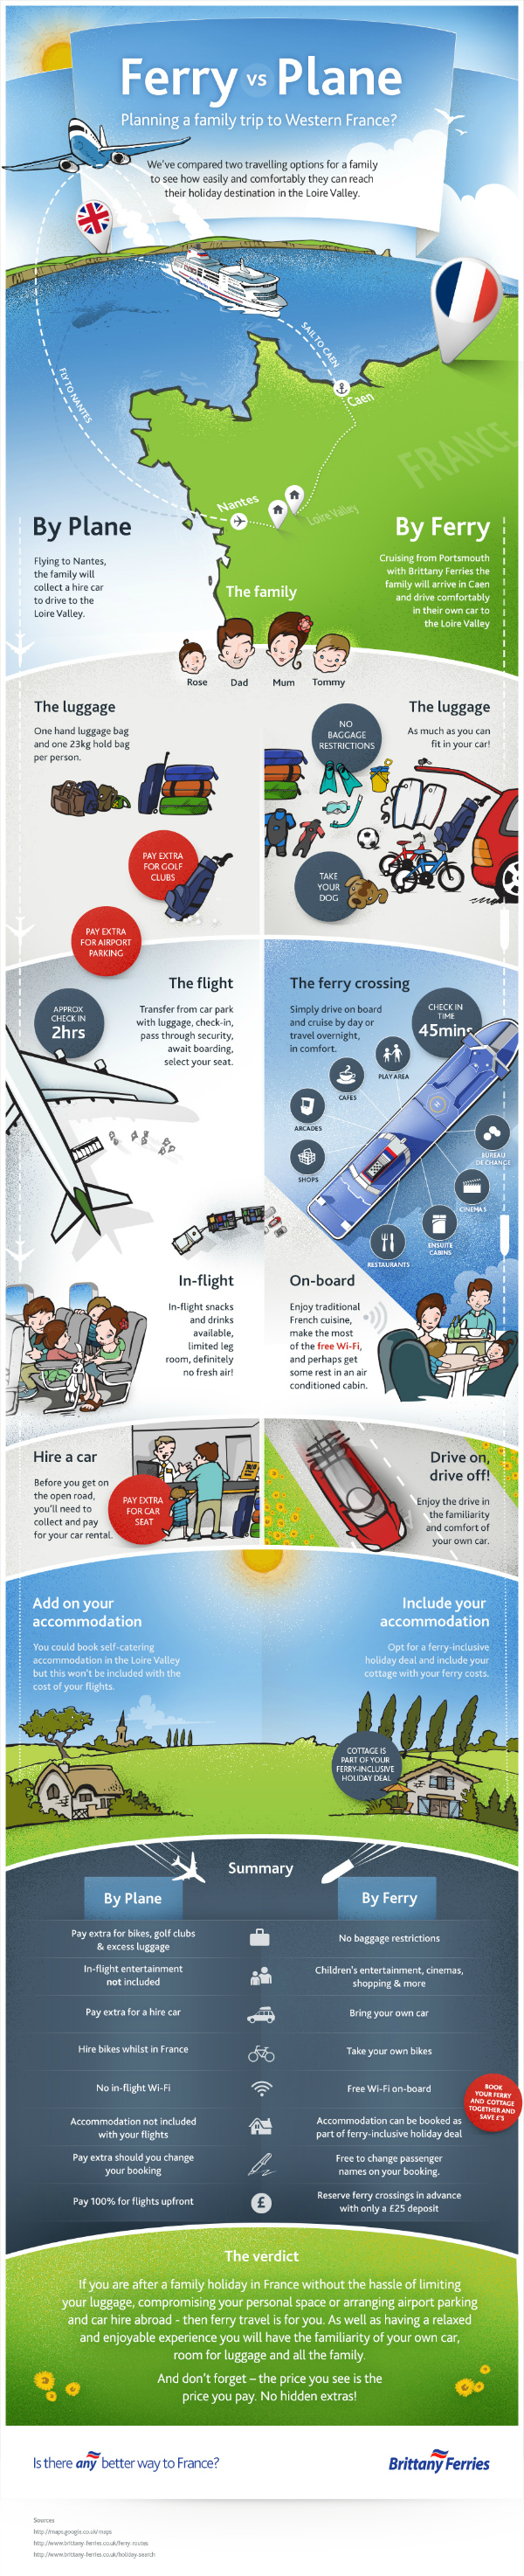 ferry-england-to-france-vs-plane-infographic